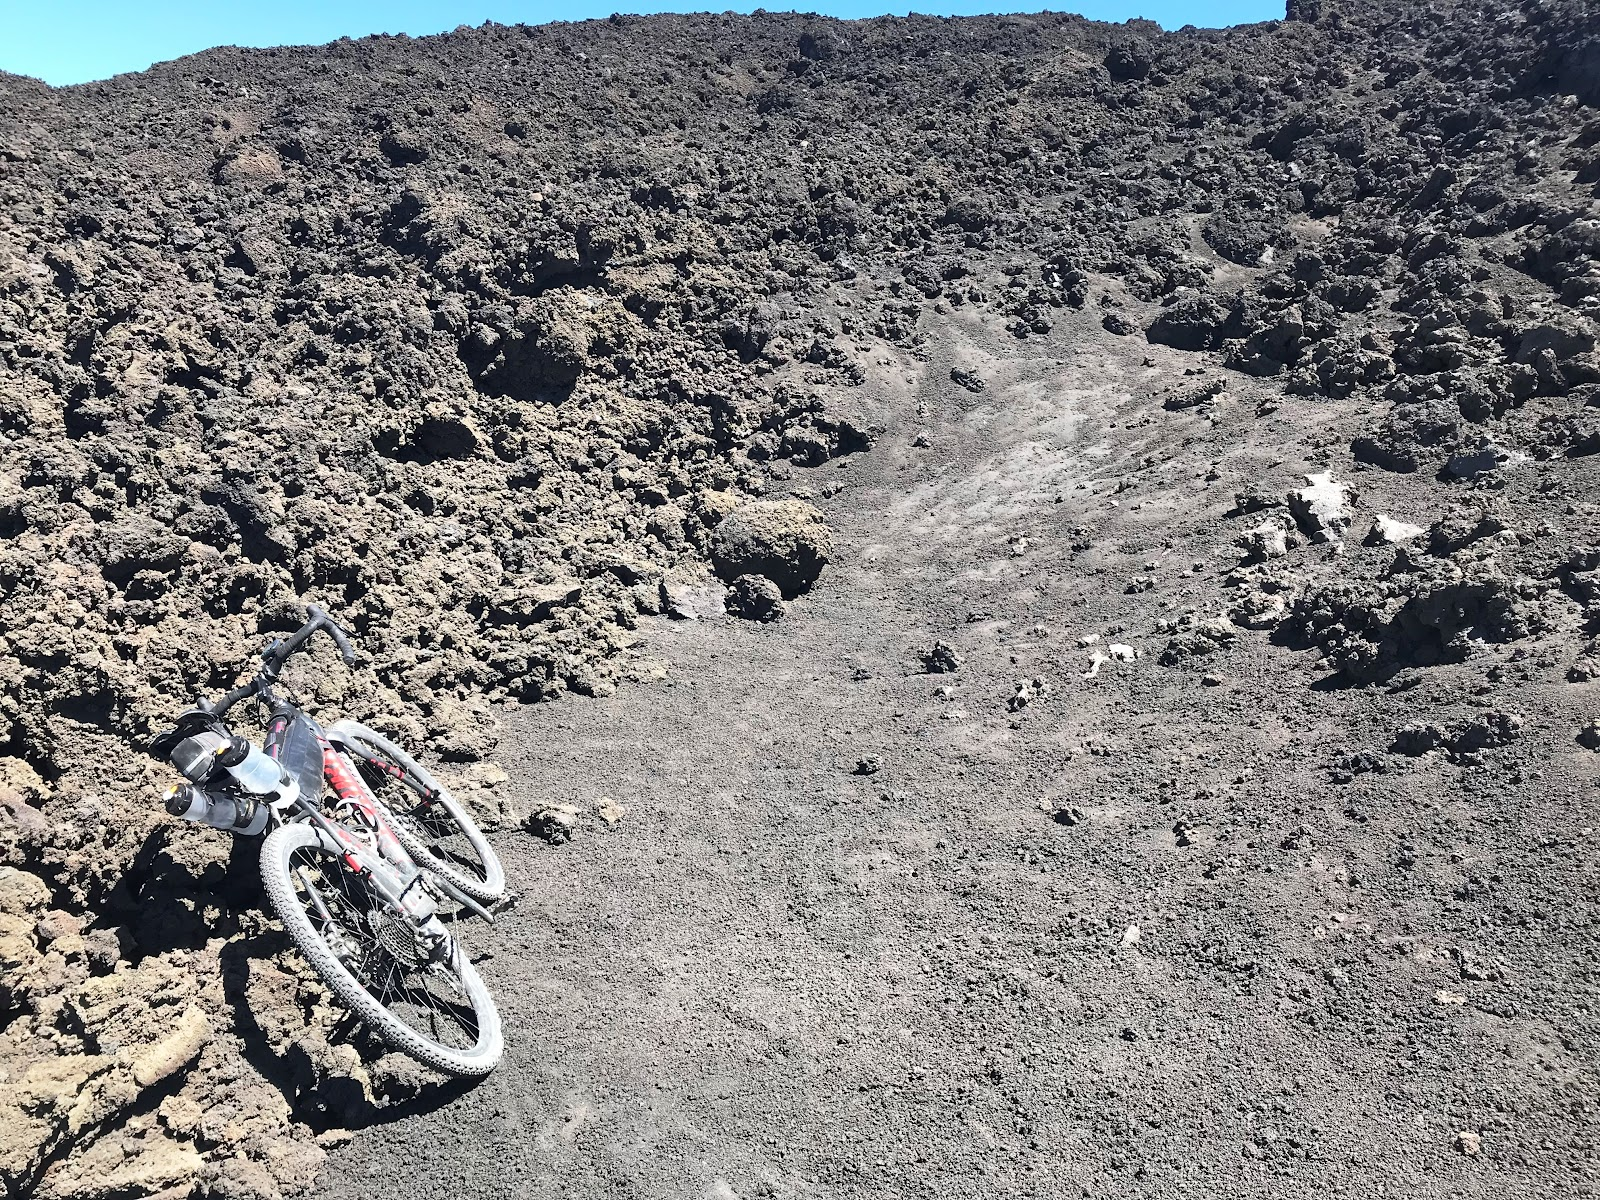 Mountain bike at end of Mount Etna cycling climb